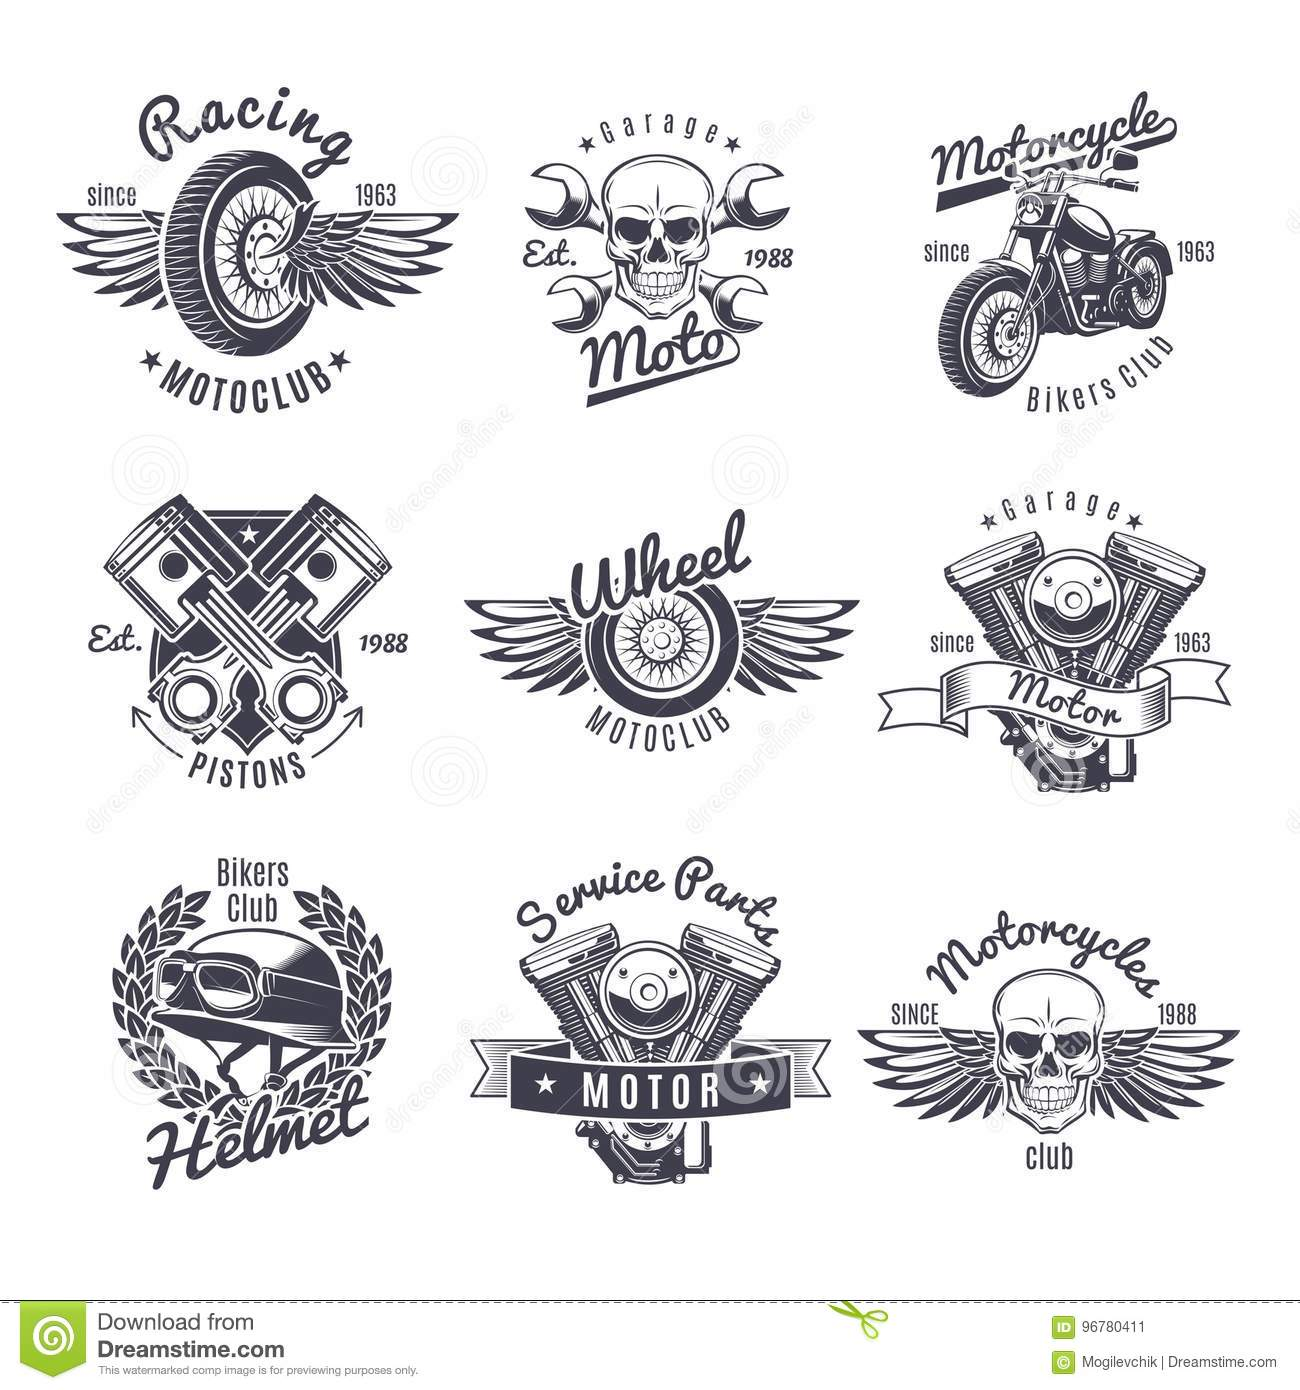 Swirl Elements And Monograms For Design And Decorate Vector 2100042 as well Royalty Free Stock Image Radio Car Aerial Antenna Image11647976 additionally Free Vintage Frame Vectors moreover 27114 1950 S Gmc Pick Up Vector besides Hot Rod T Bucket 30090833. on antique car illustrations